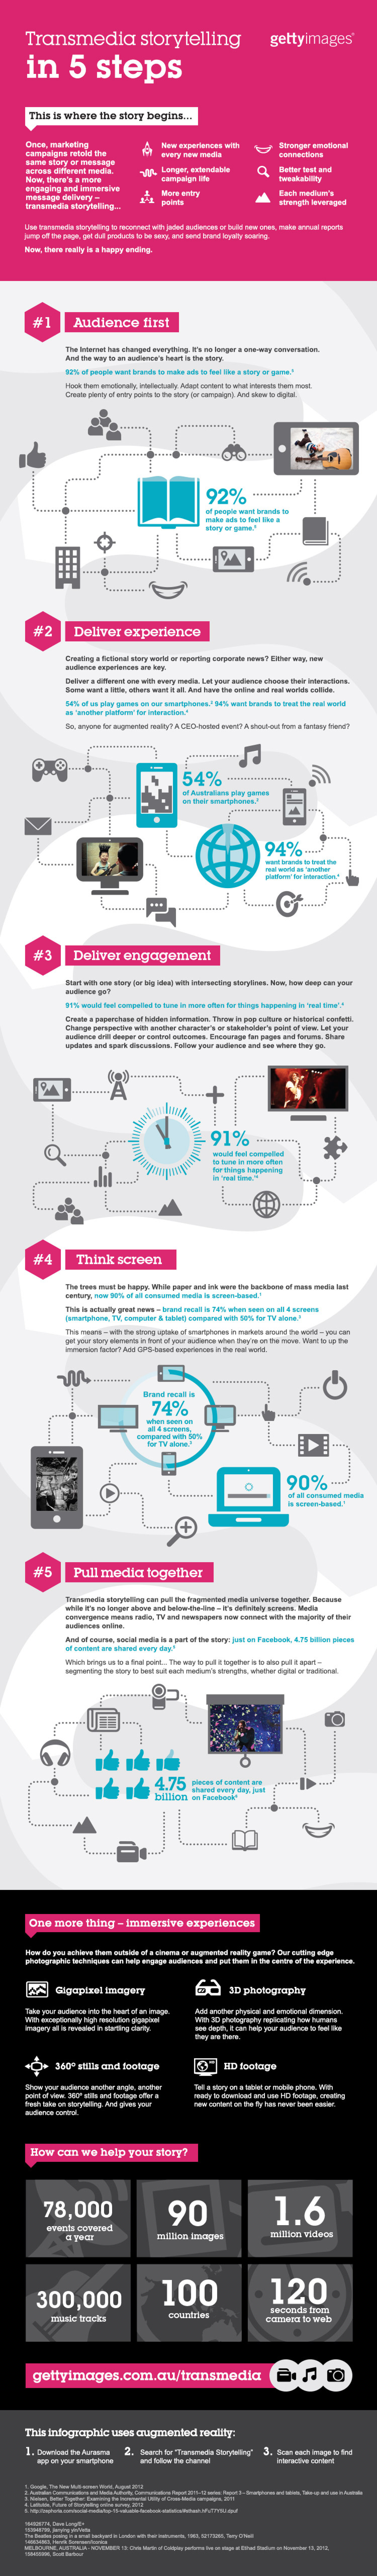 Transmedia storytelling in 5 steps Infographic